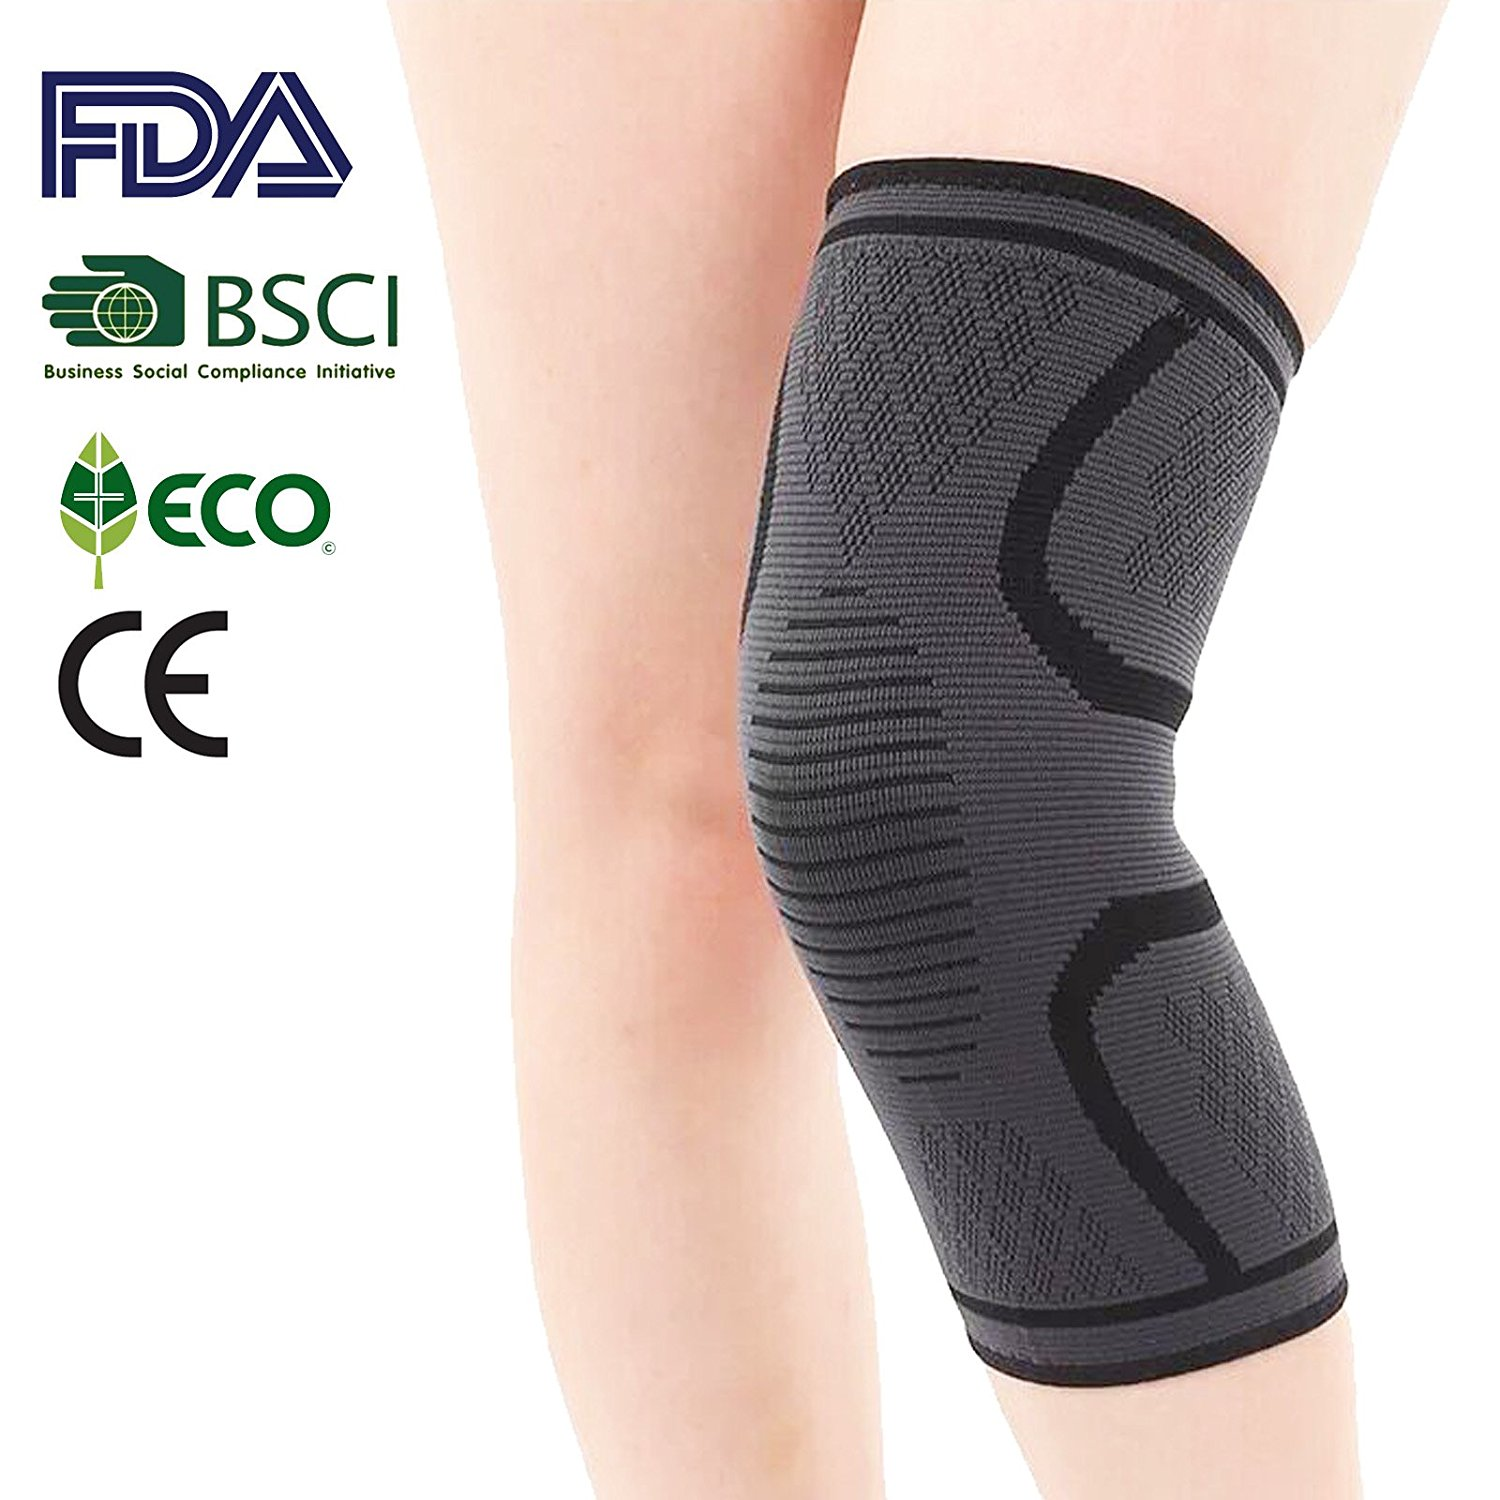 4e3cd8c5b2 Get Quotations · Knee pad Knee pad for work/running/basketball Knee pad  protector knee support sleeves